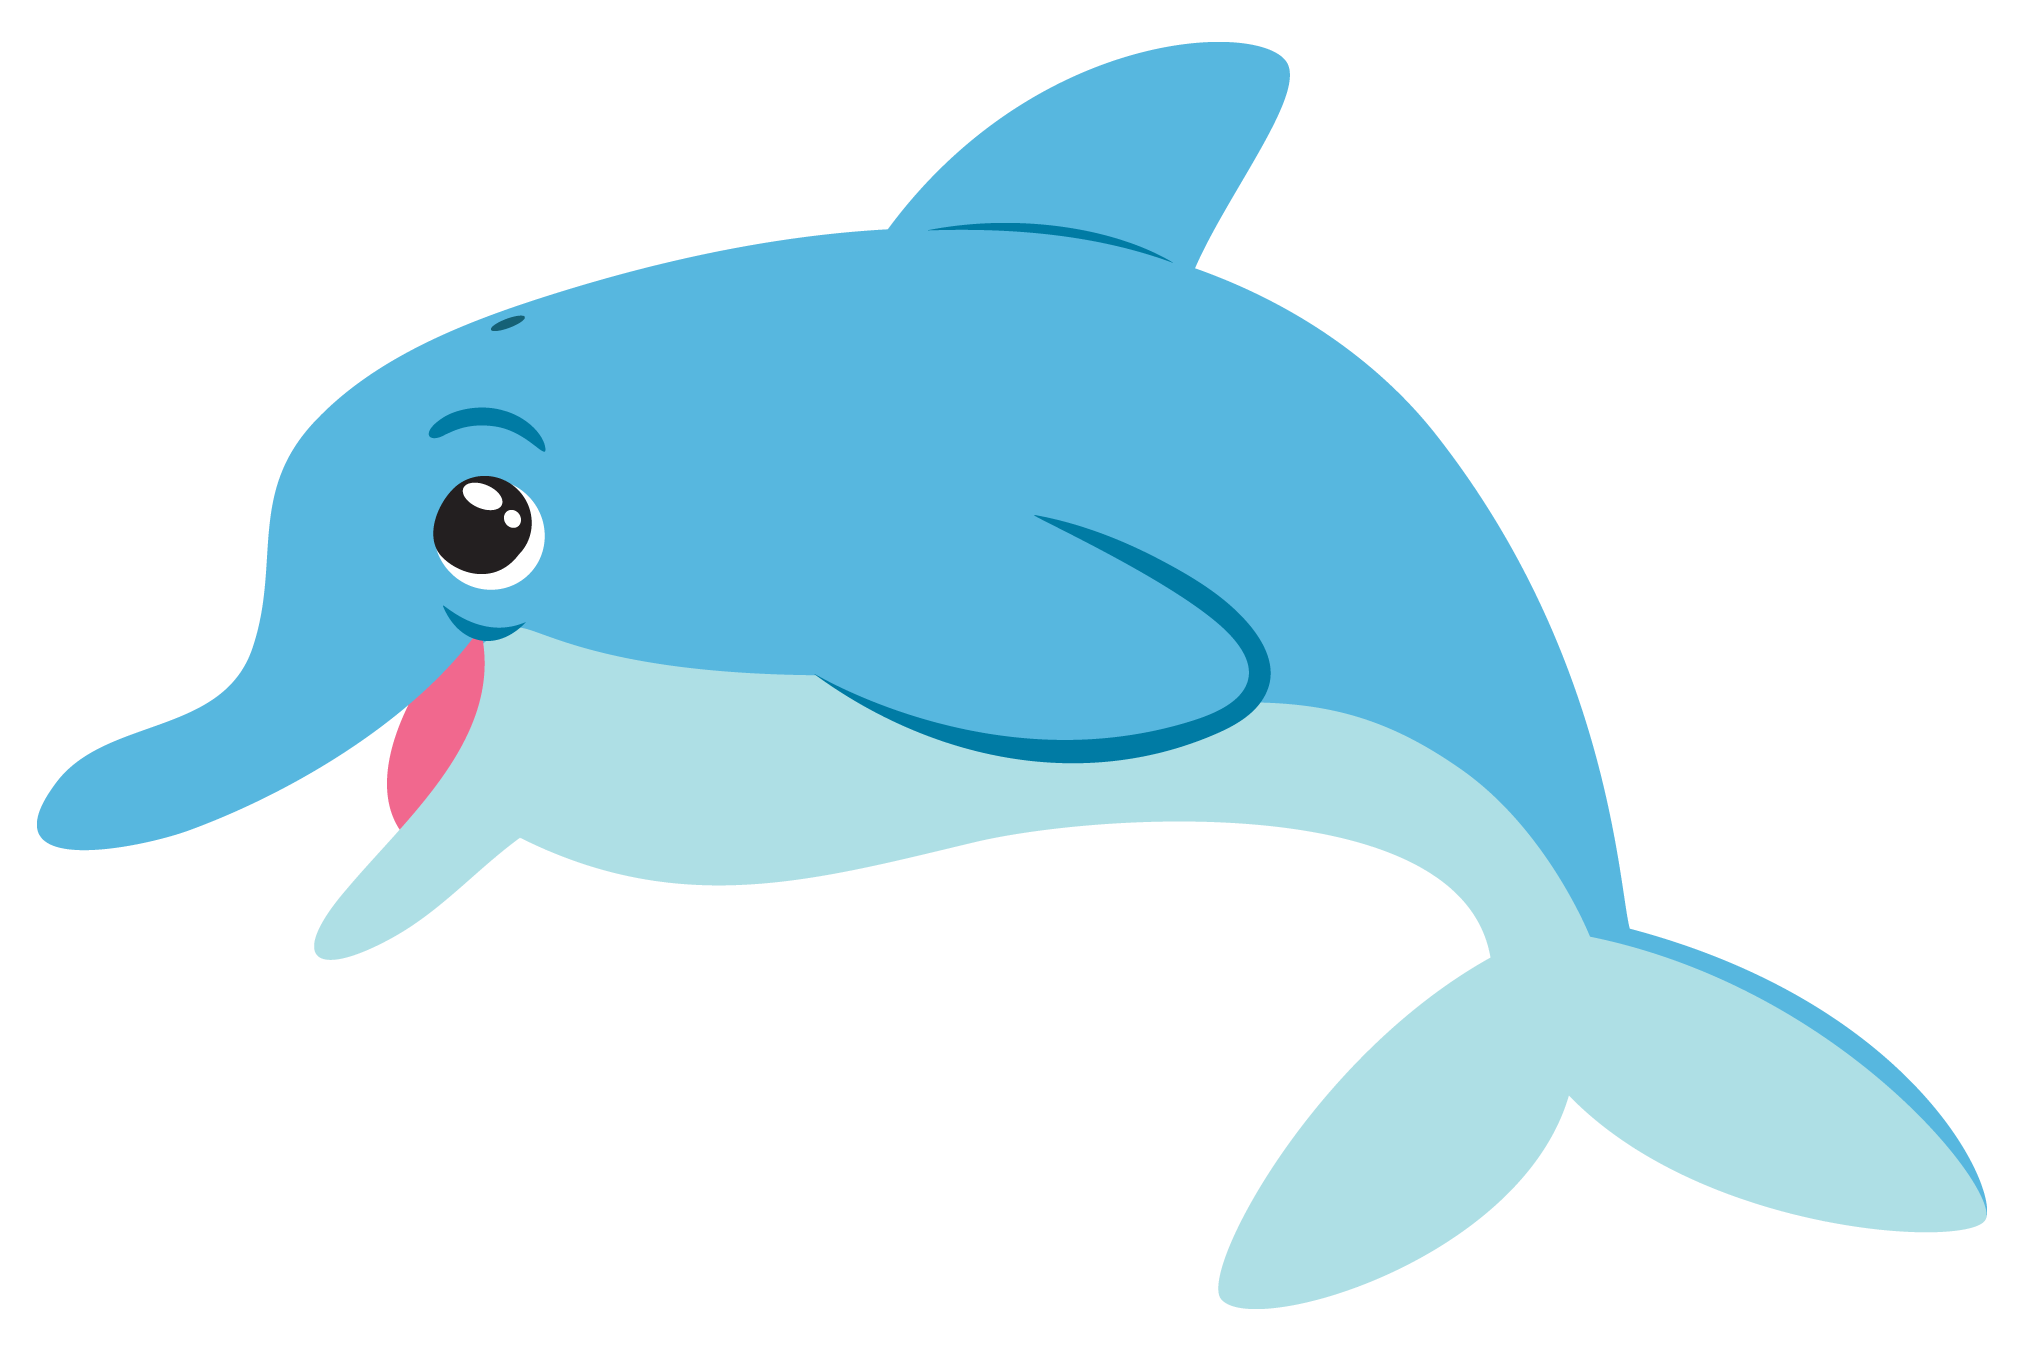 Blue starfish pencil and. Dolphins clipart cute anime